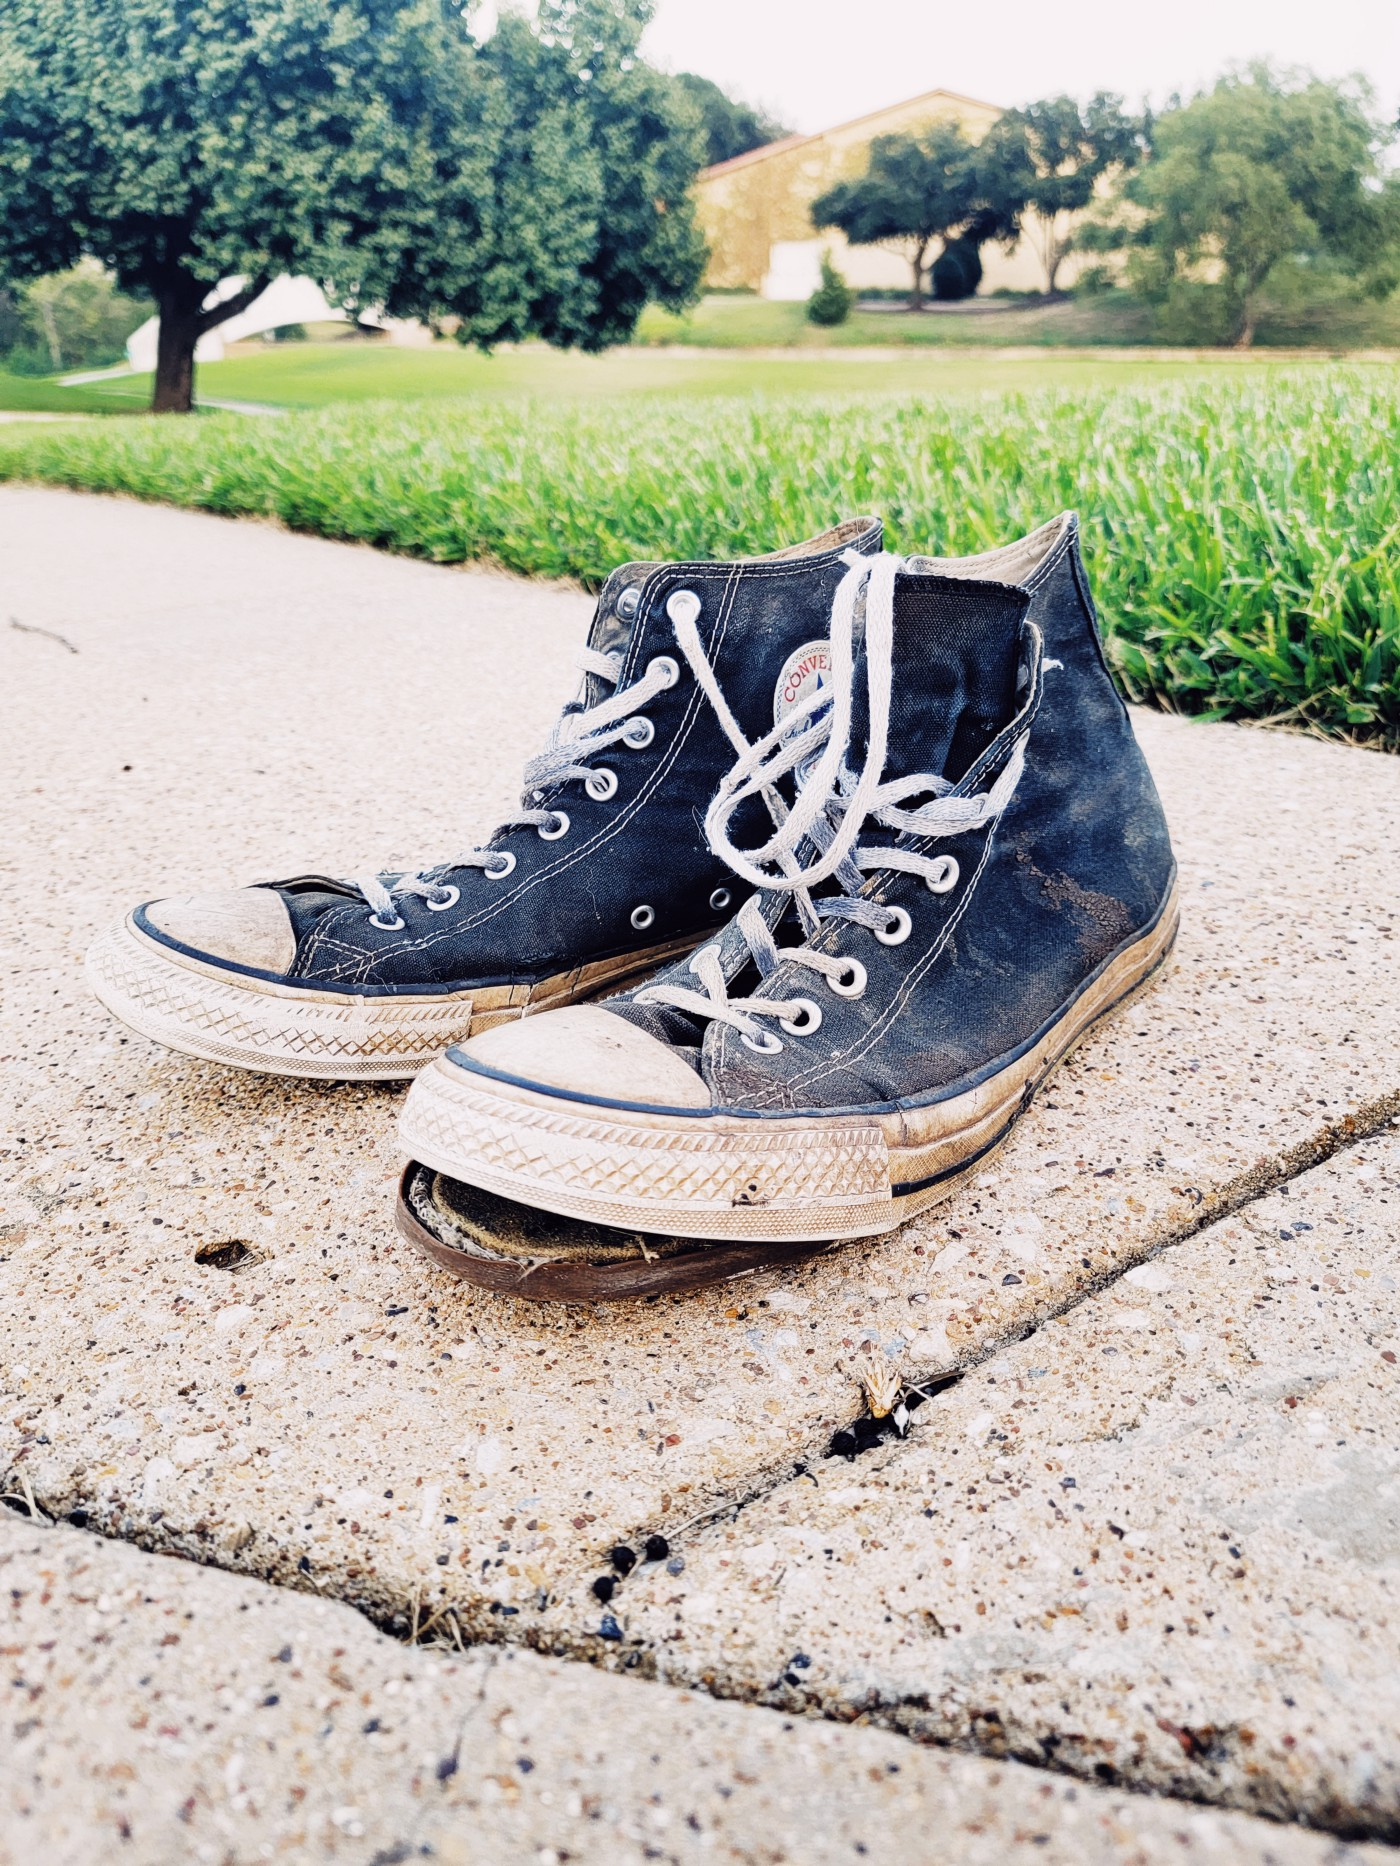 A pair of high-top sneakers in terrible shape.